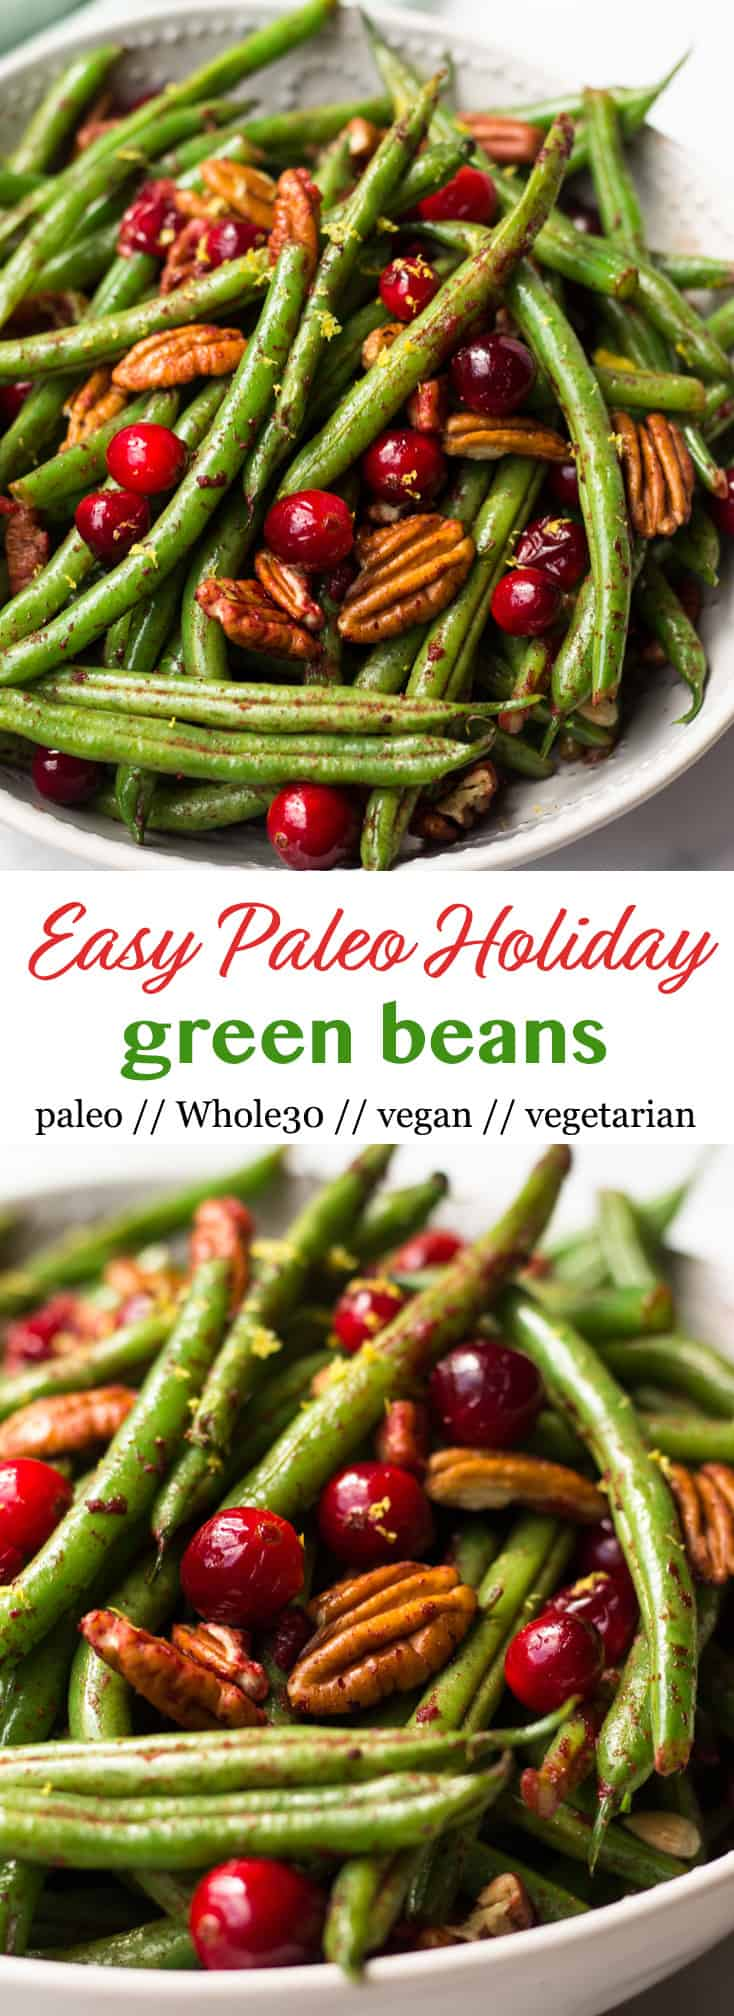 These super easyPaleo Holiday Green Beans come together in less than 10 minutes and make the perfect side to your main course - paleo, vegan, and Whole30 approved too! - Eat the Gains